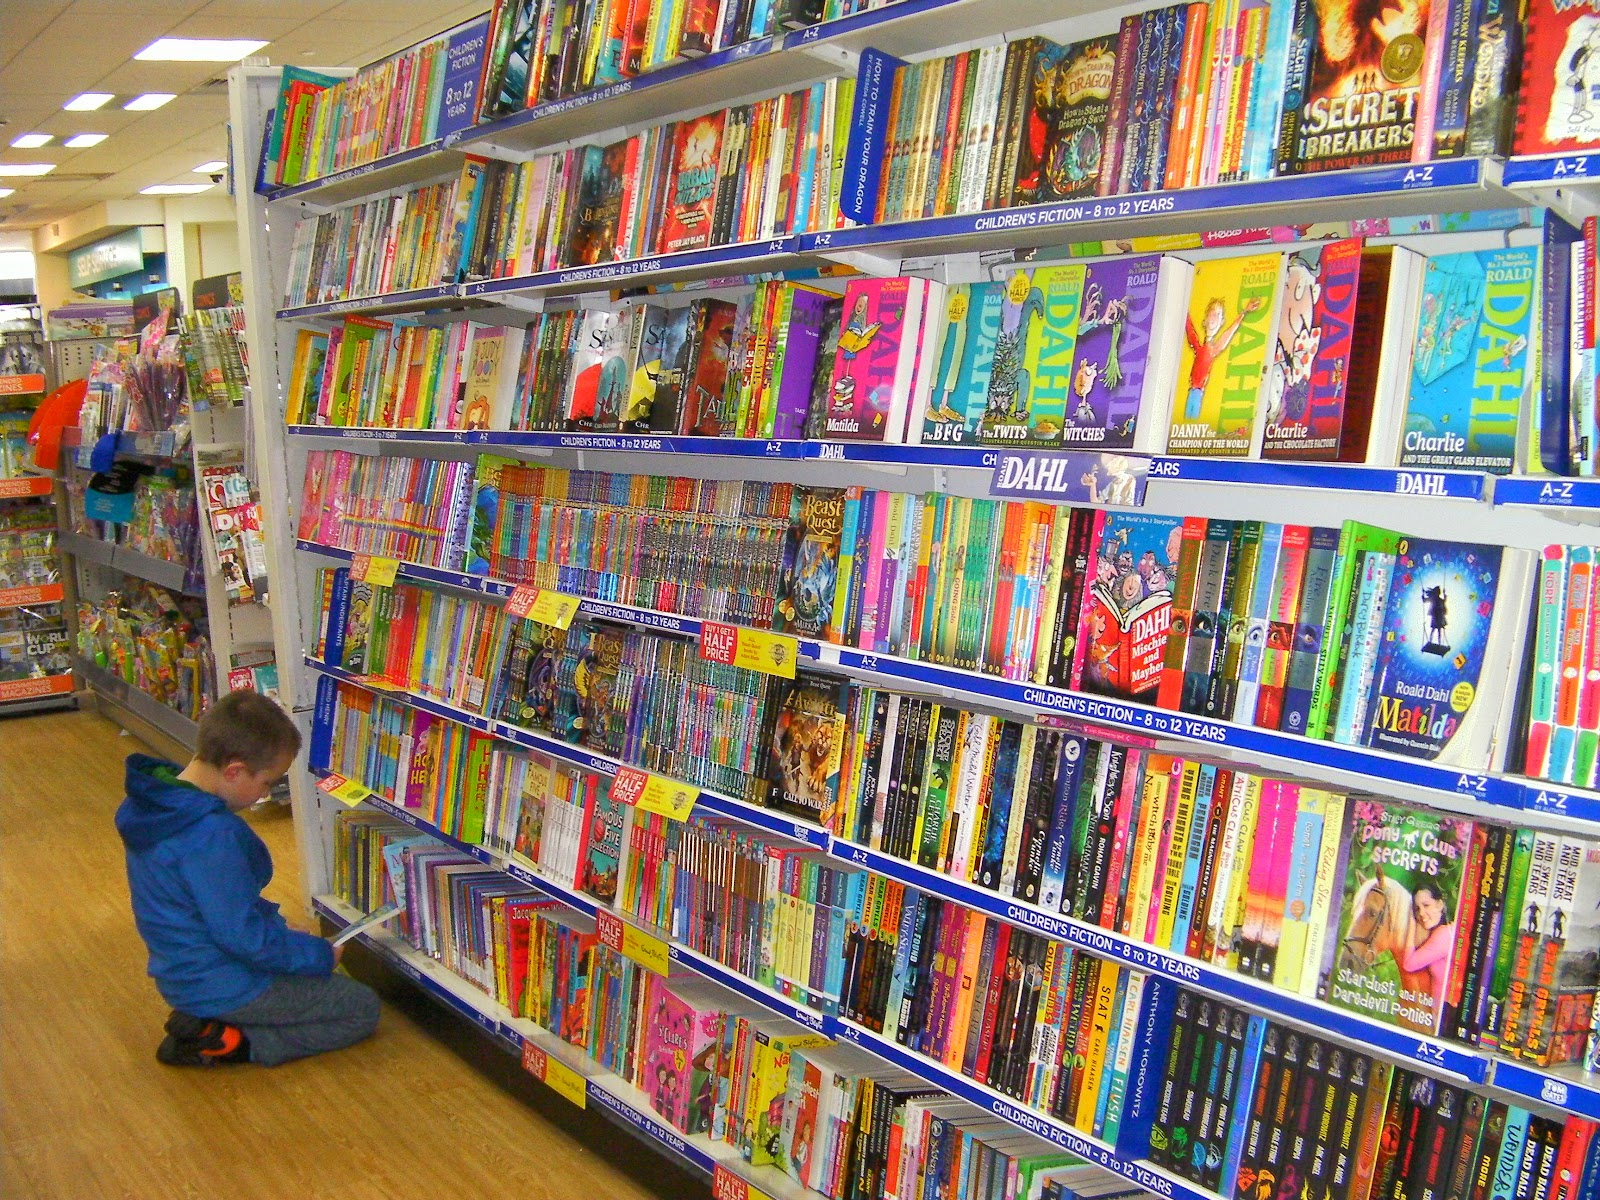 childrens book section at whsmiths stationers